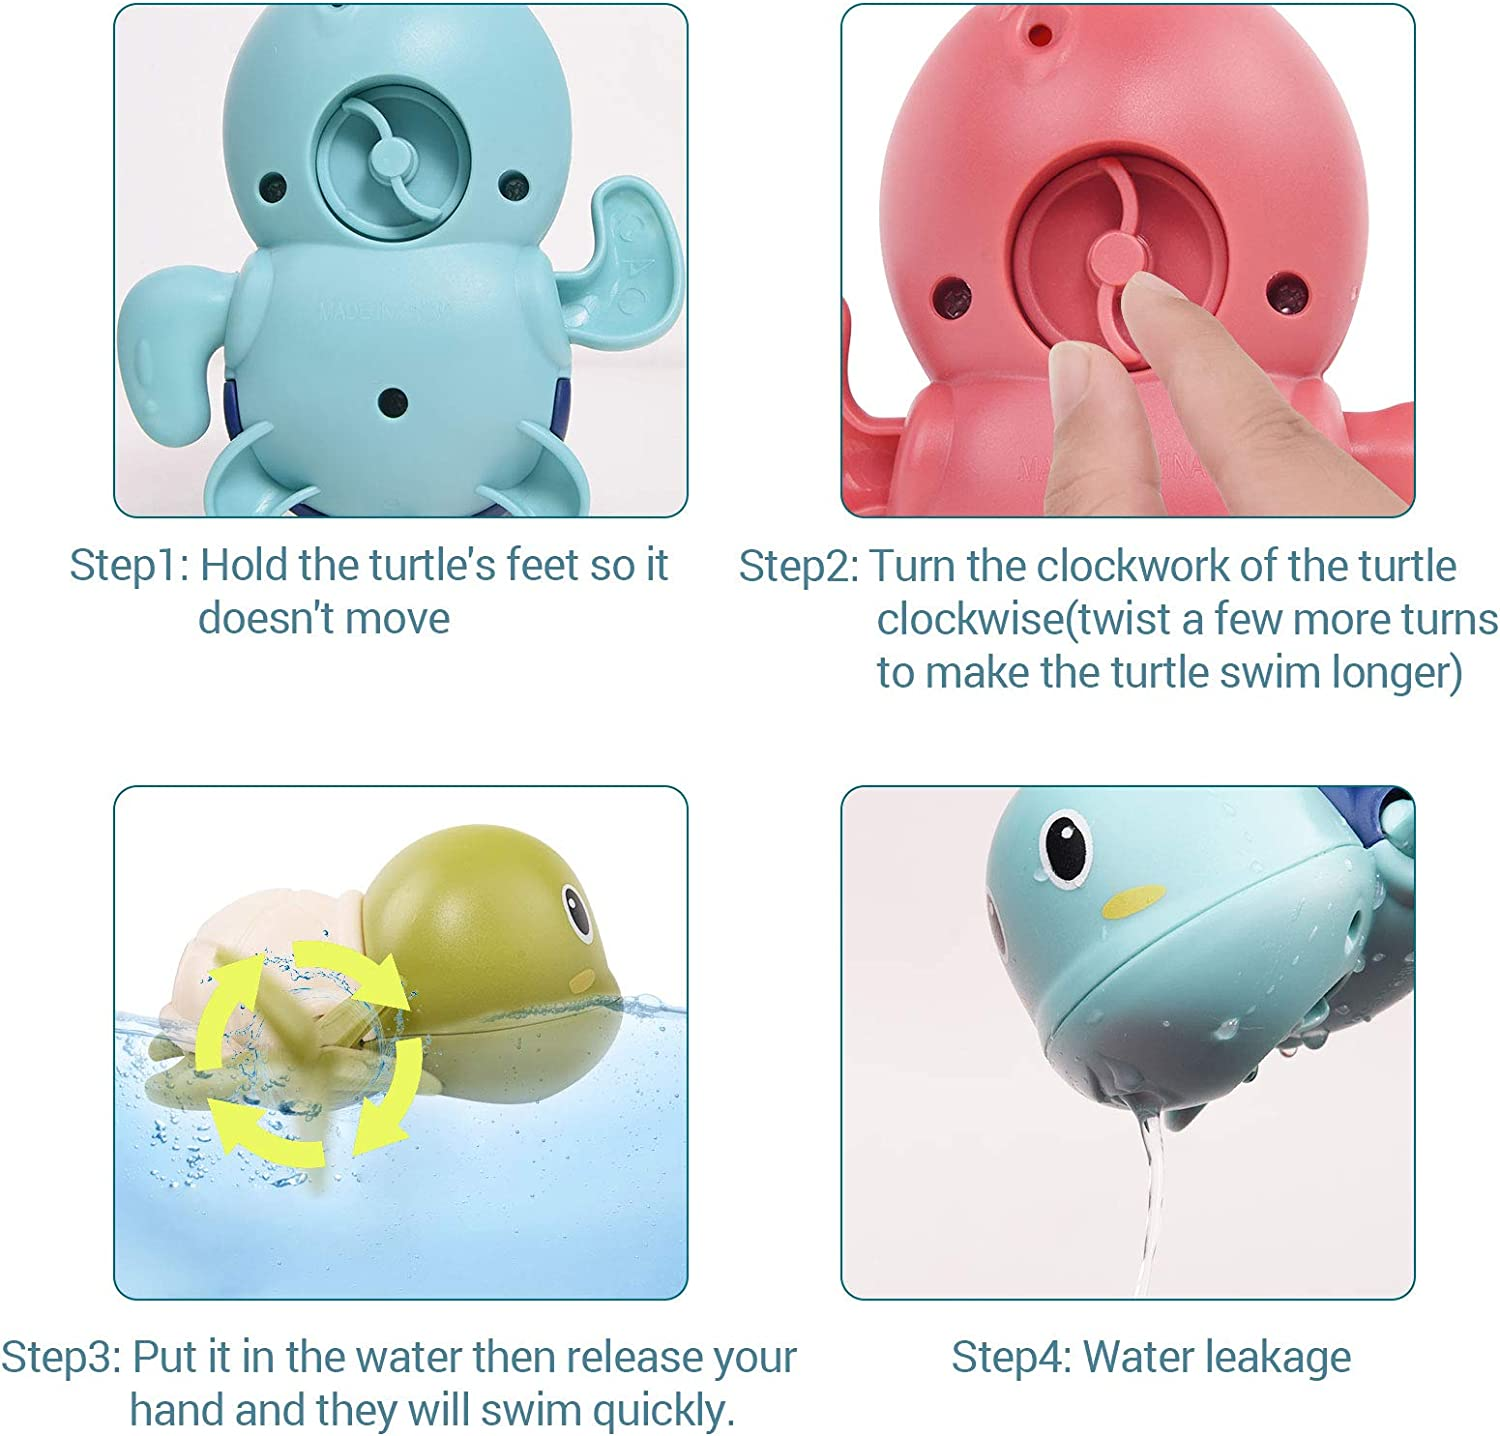 afontoto Baby Bath Toys Wind-up Turtle Toys Pool Swim Bath Toys Multi-Colors Swimming Bathtube Toy Pool Playset for Toddlers Kids Birthday for Boys and Girls Green, Blue, Pink